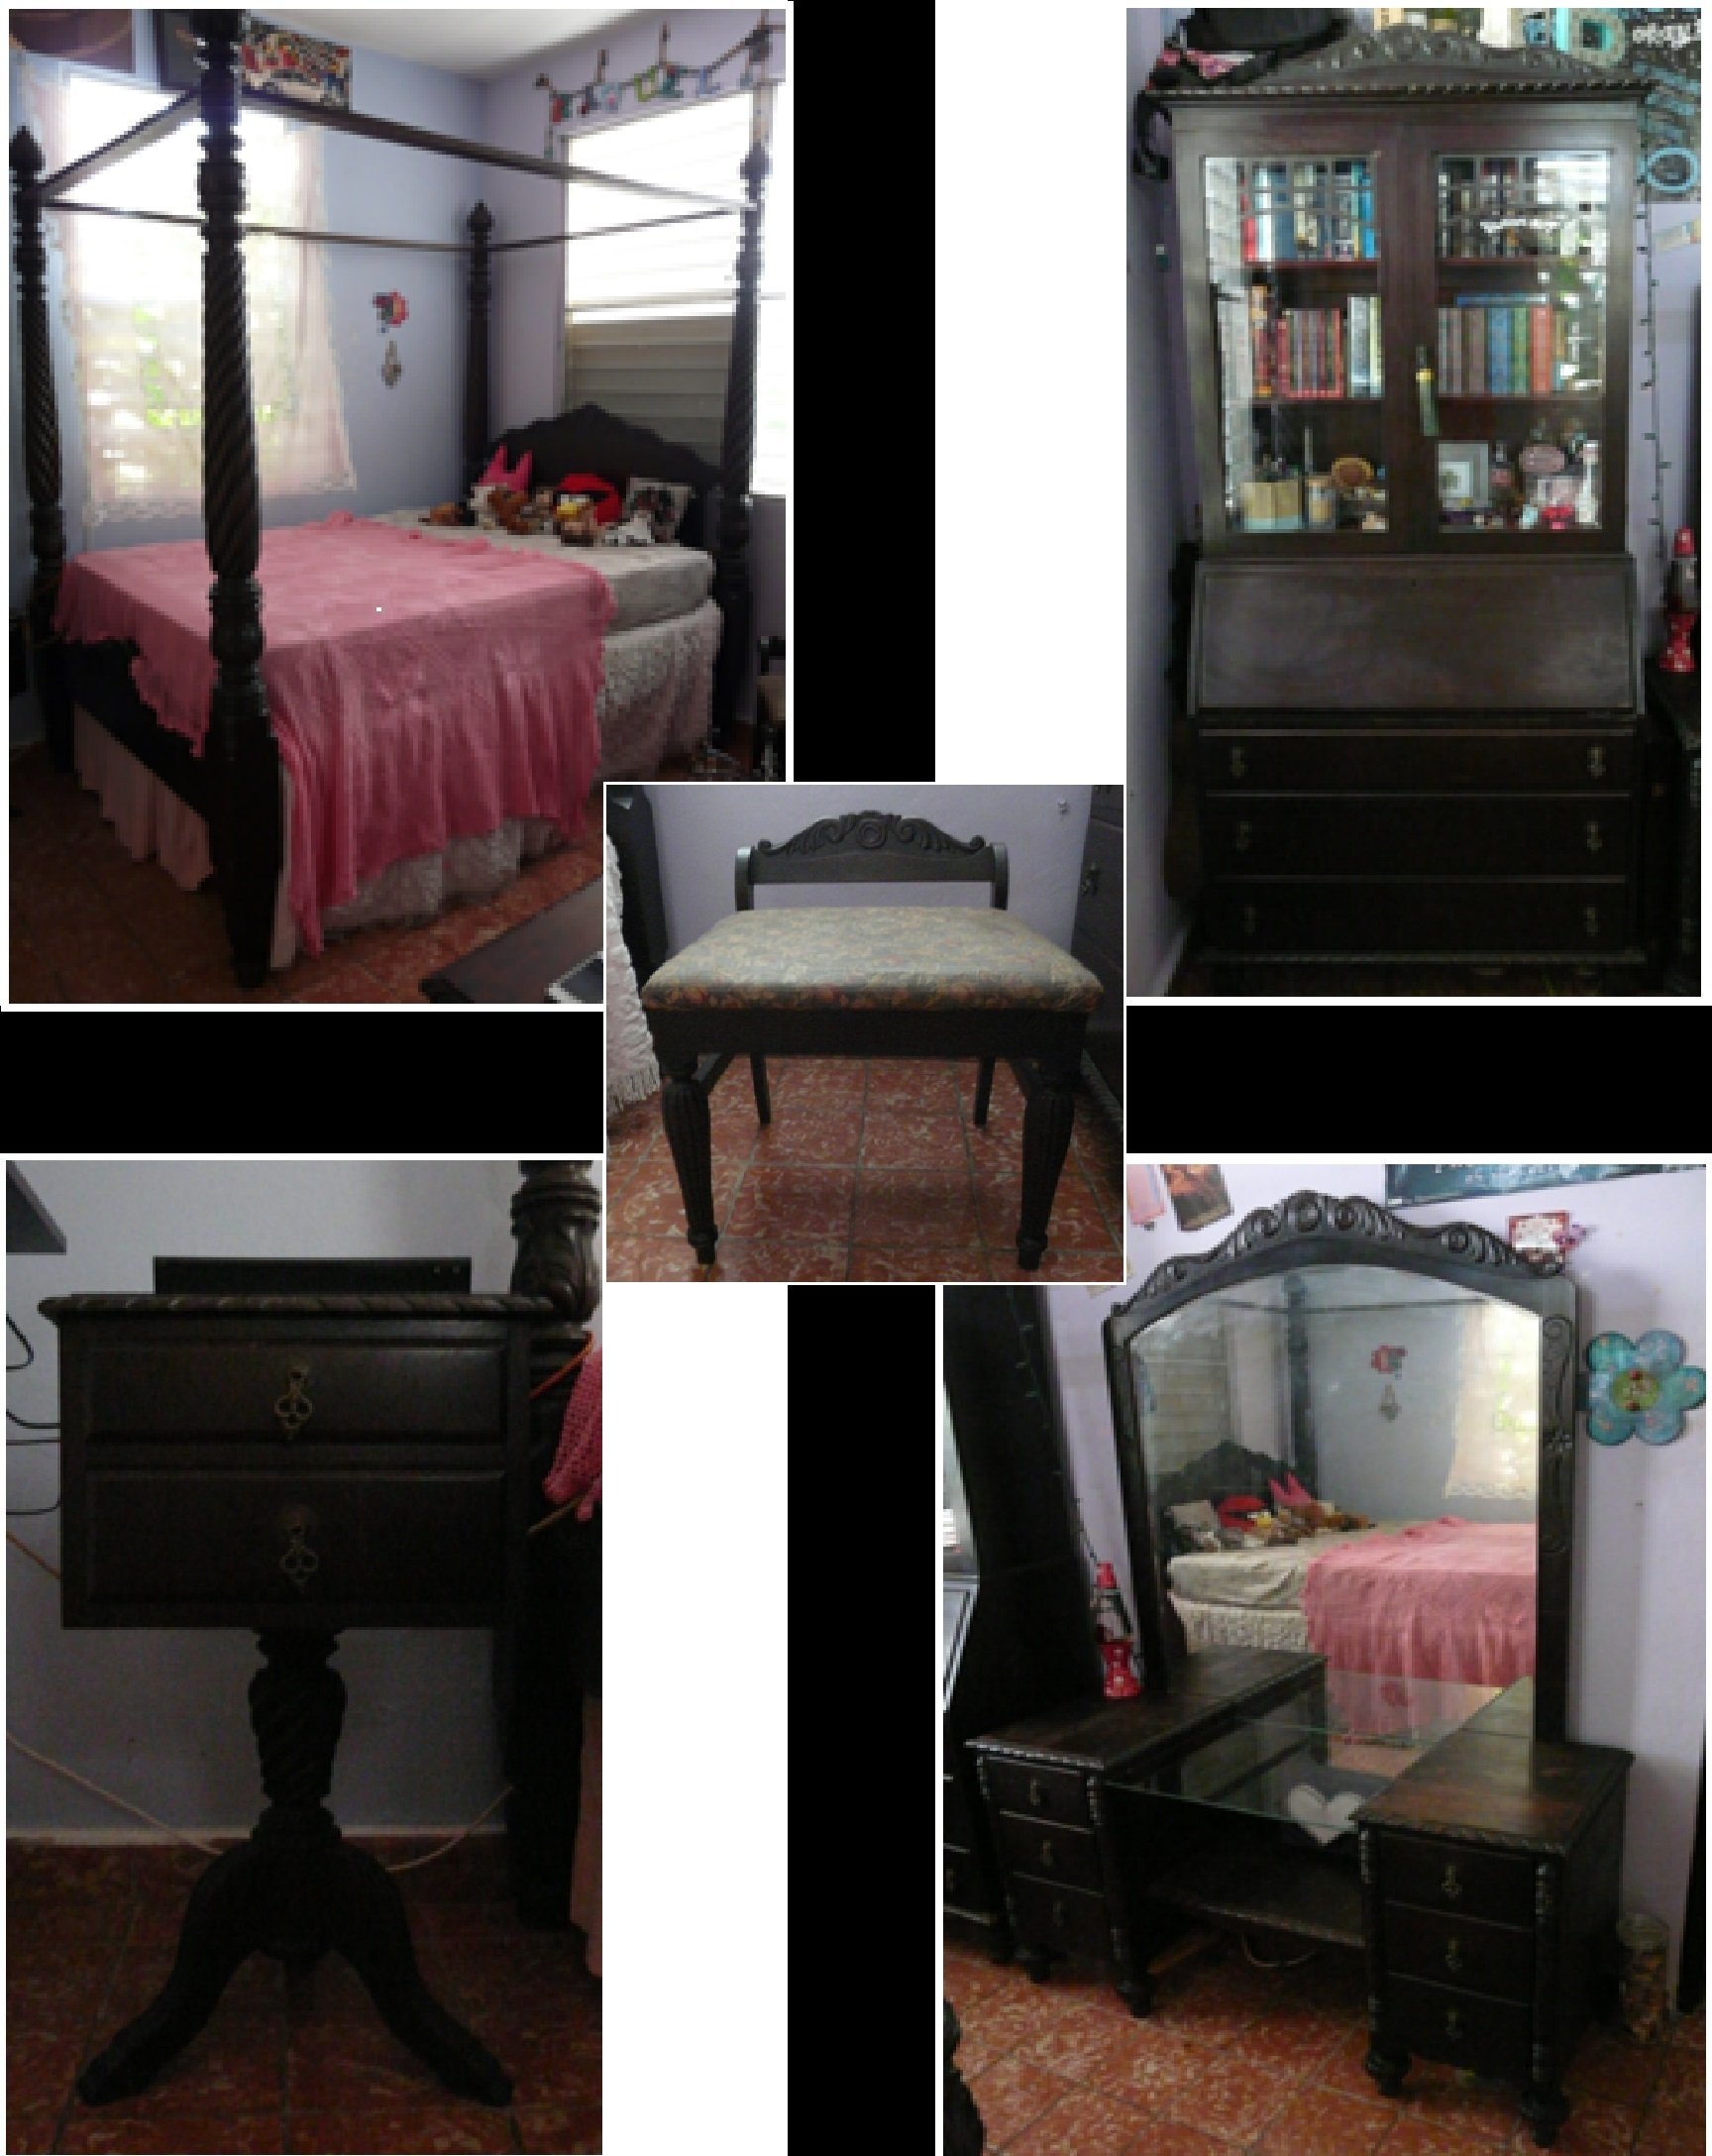 Bedroom set full size for sale classifieds for Full size bedroom furniture sets sale